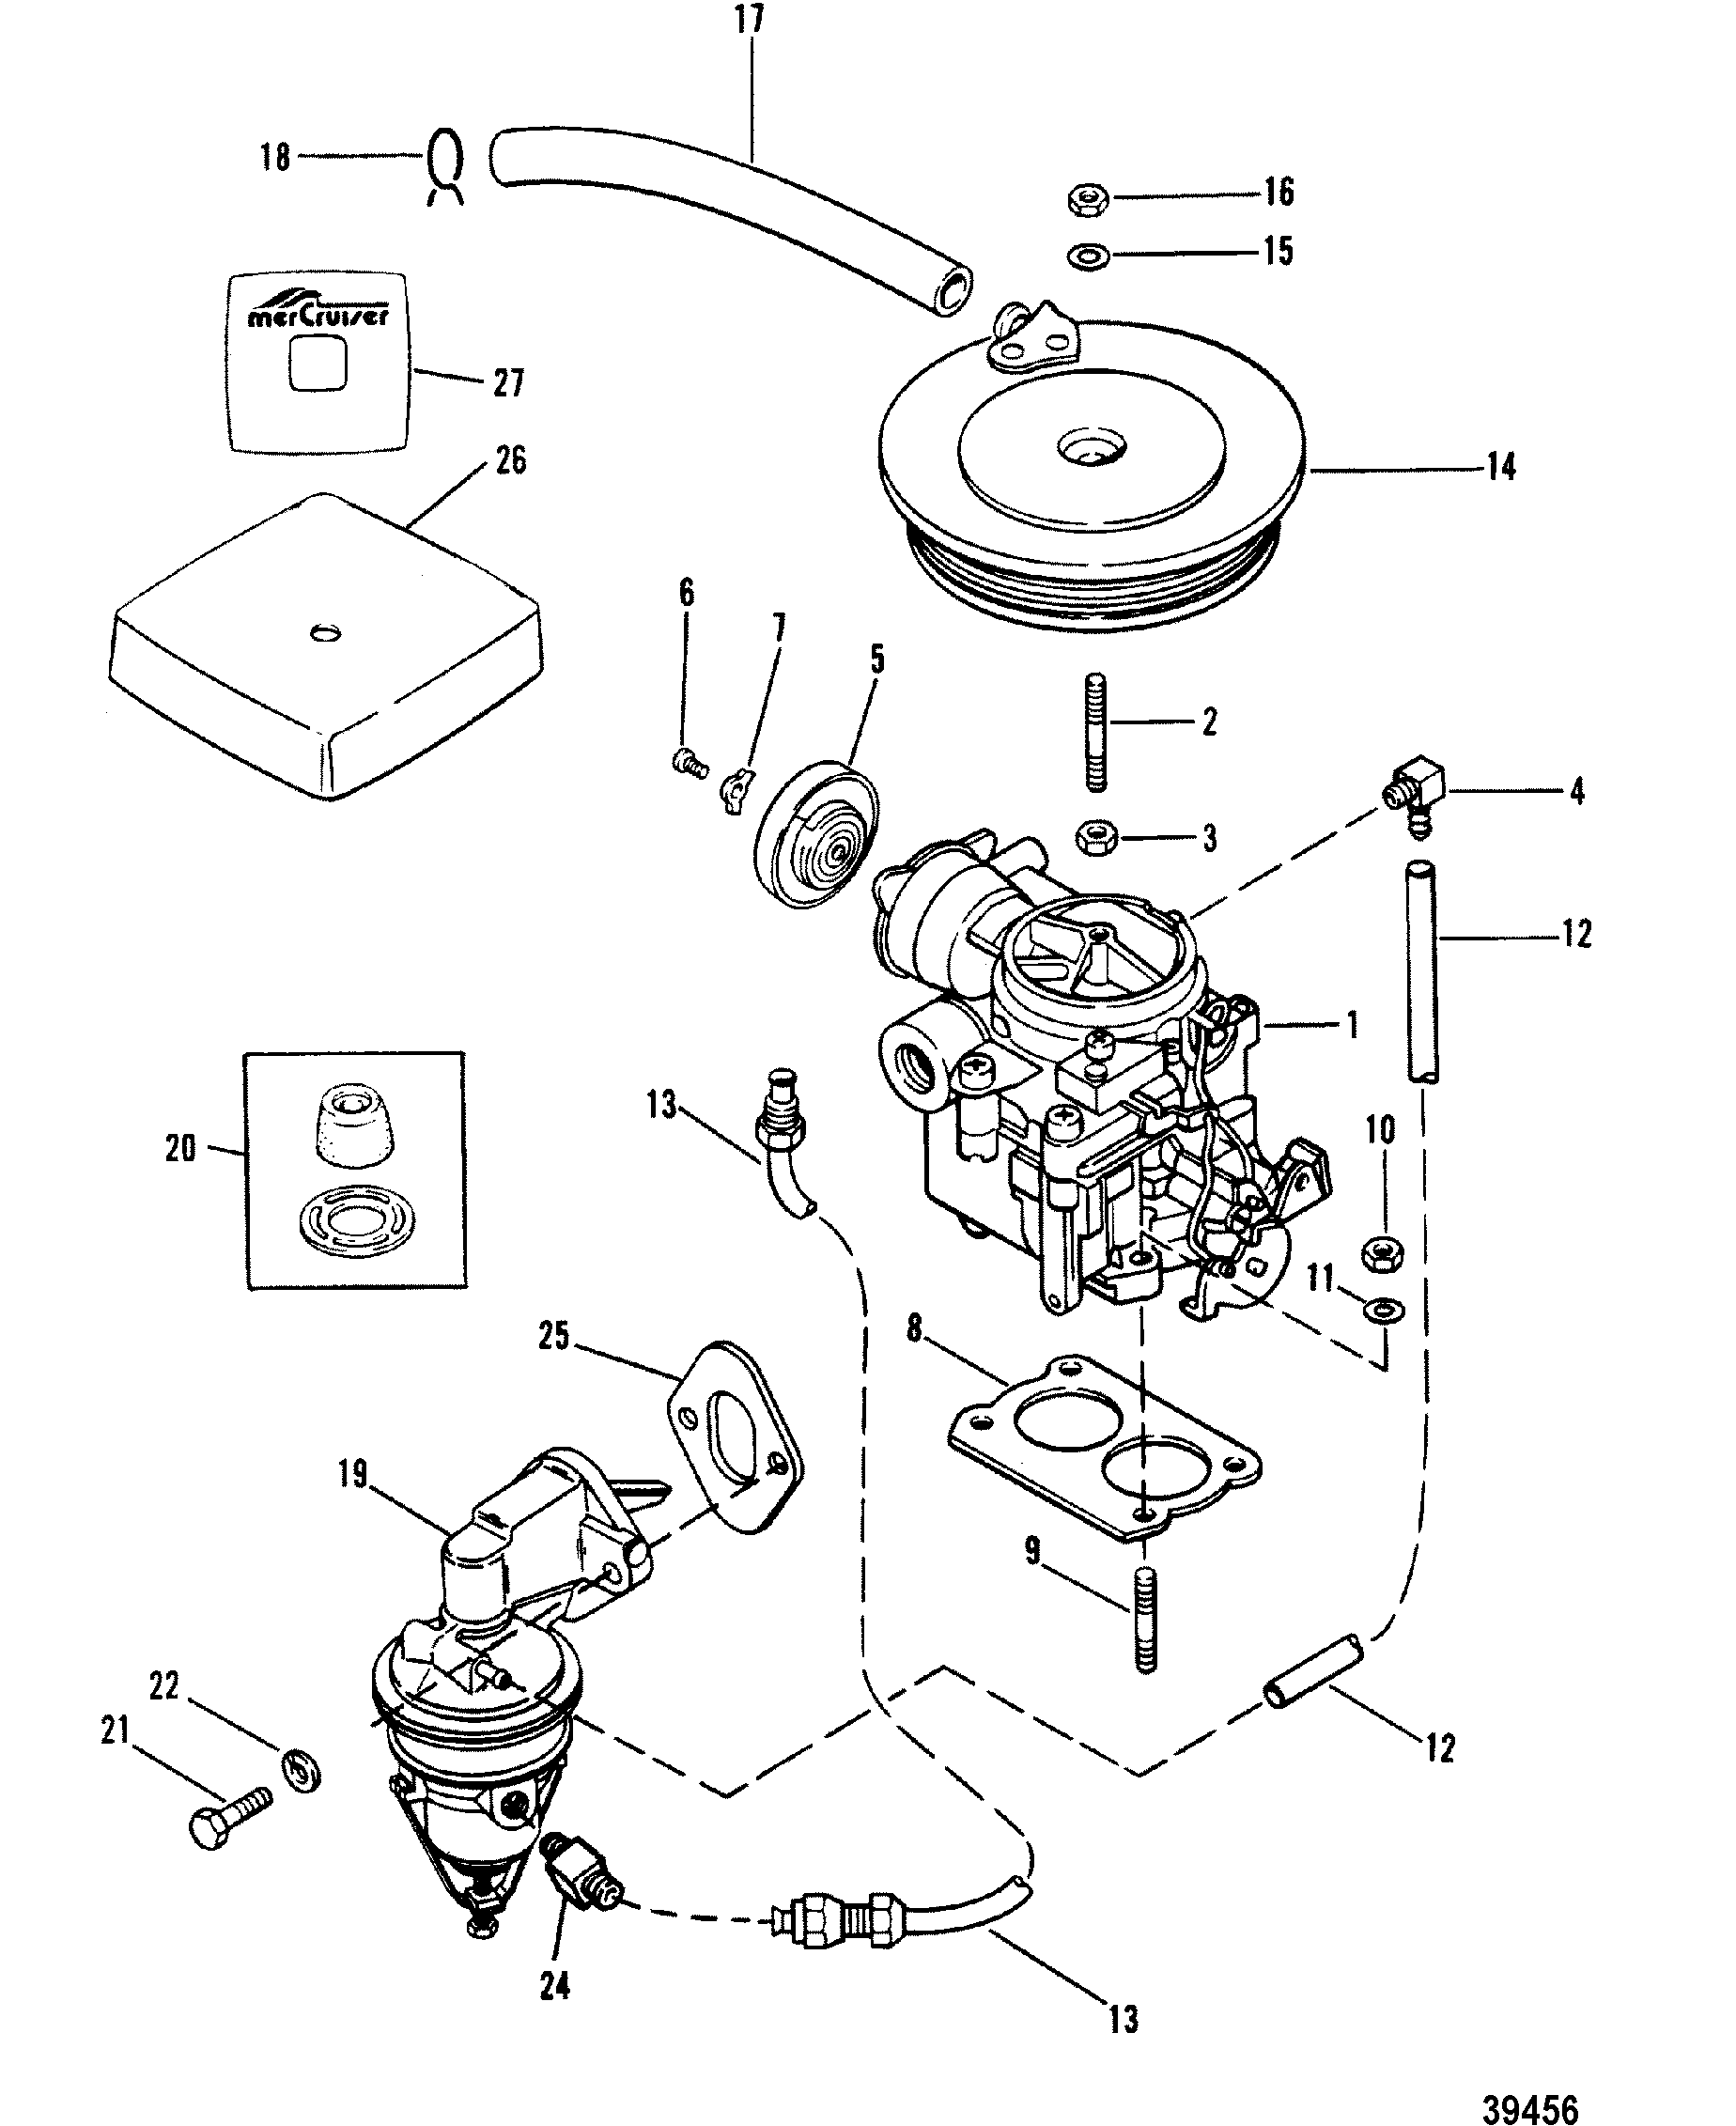 Ktm 150 Head Schematic